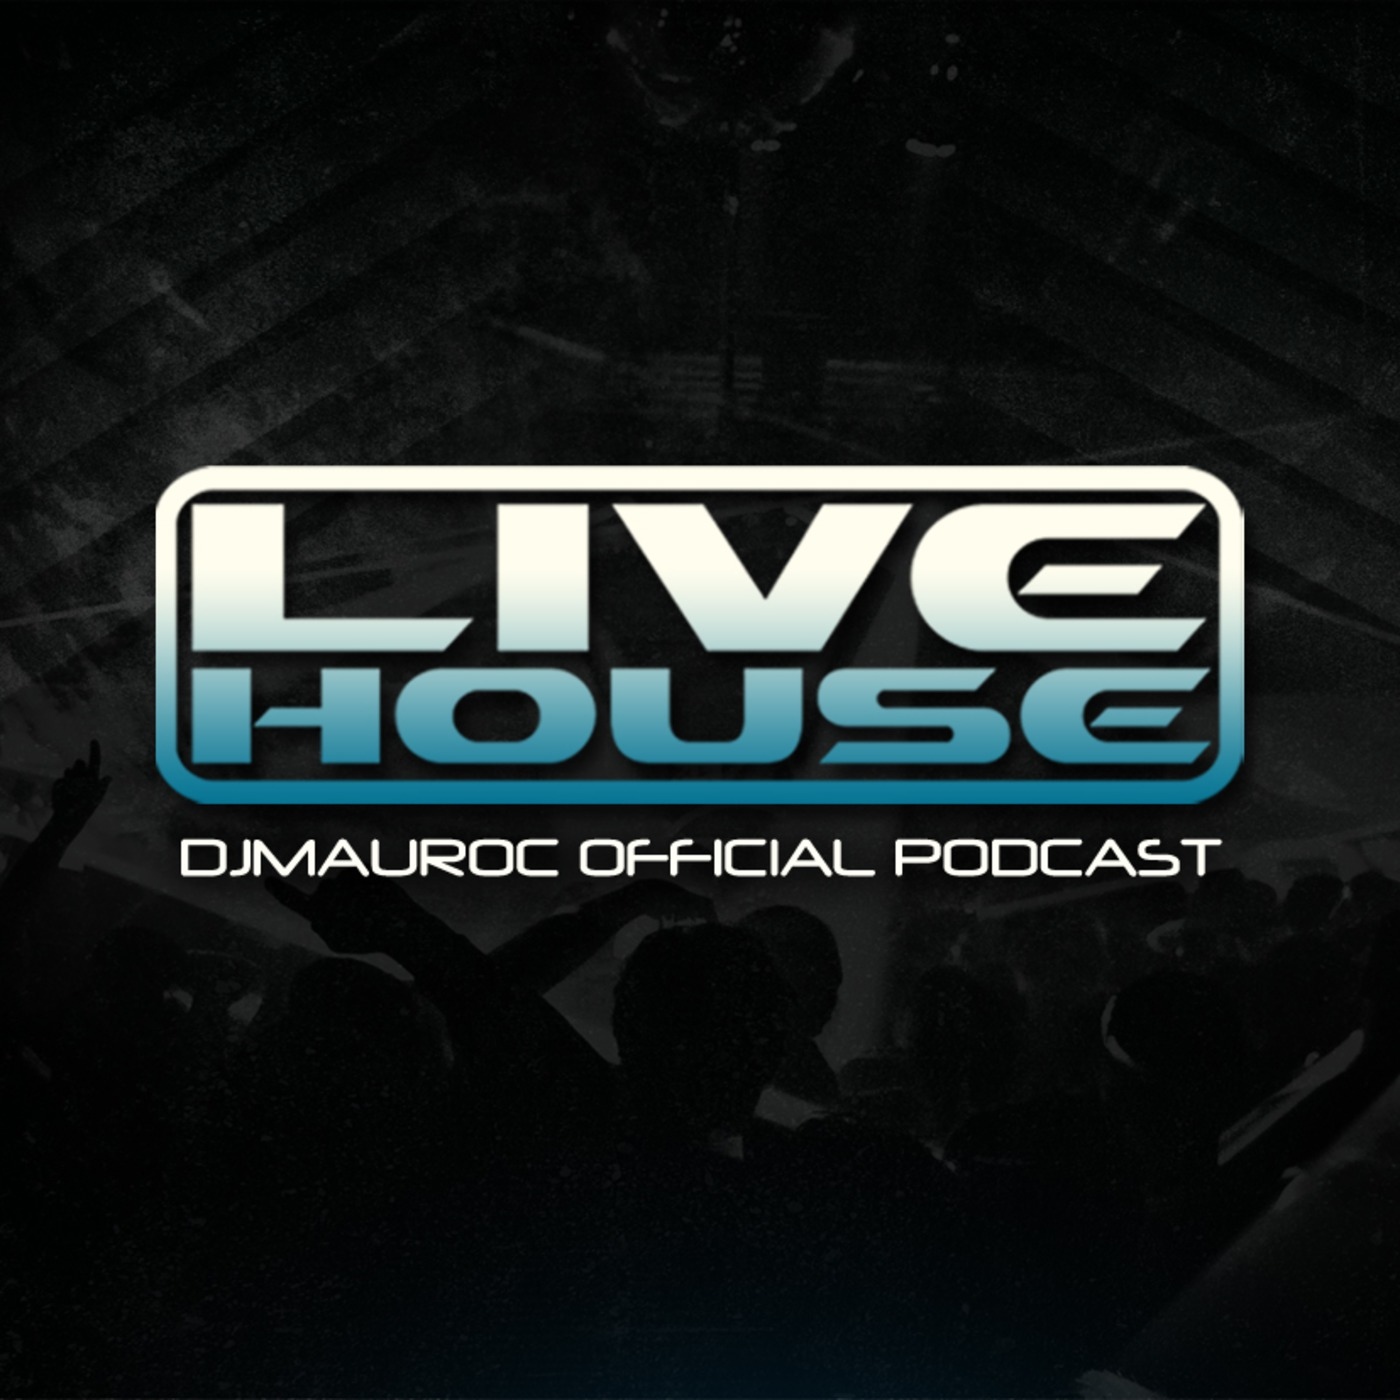 LIVE HOUSE Podcast